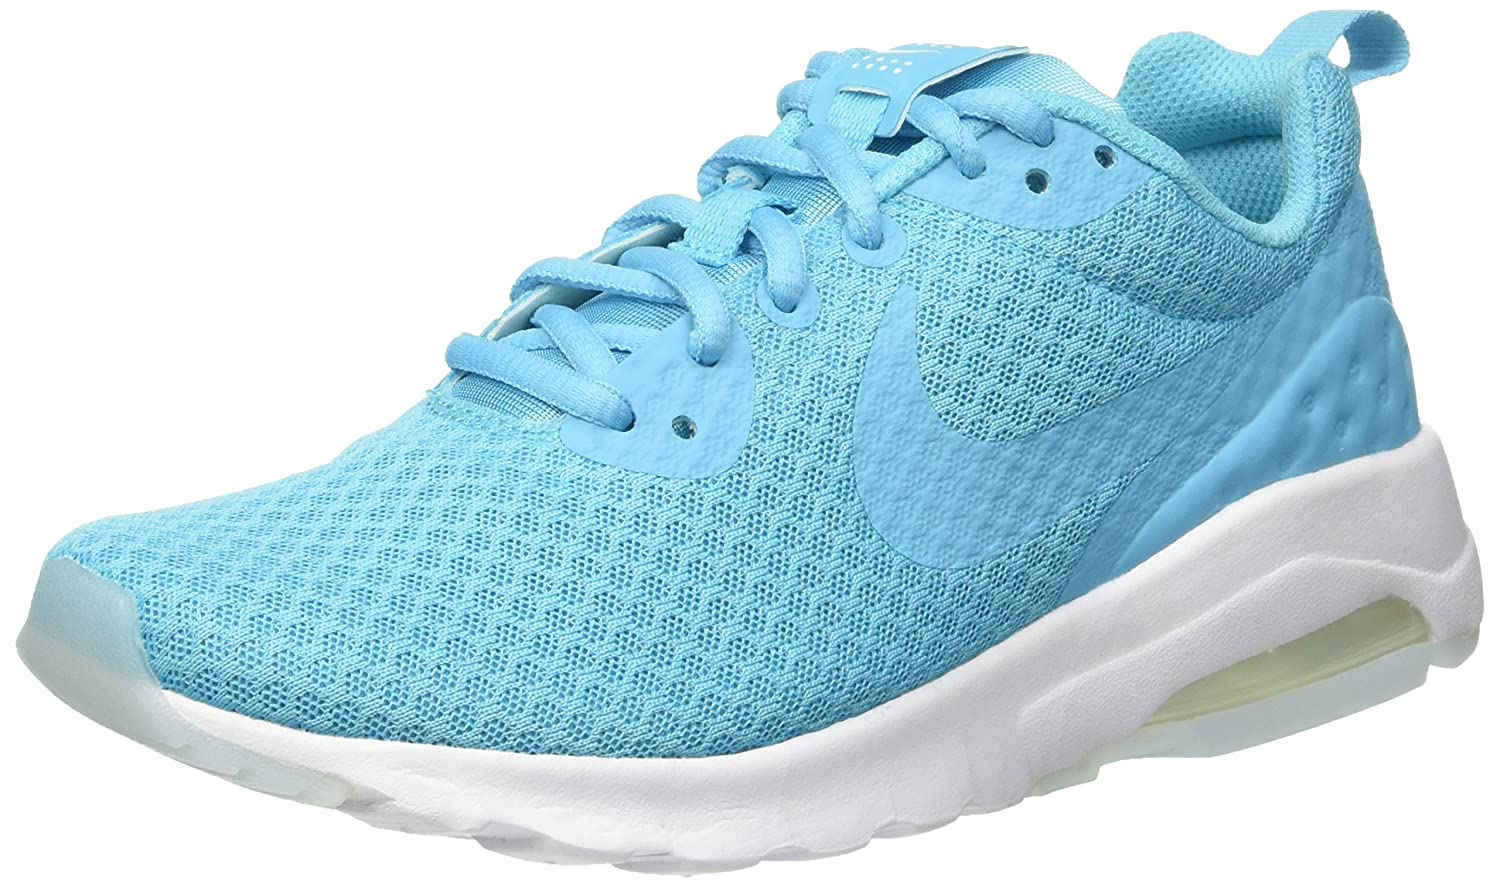 NIKE Women's Air Max Motion Lw Running Shoe B0147HZYB6 8.5 B(M) US|Gamma Blue/Gamma Blue/White